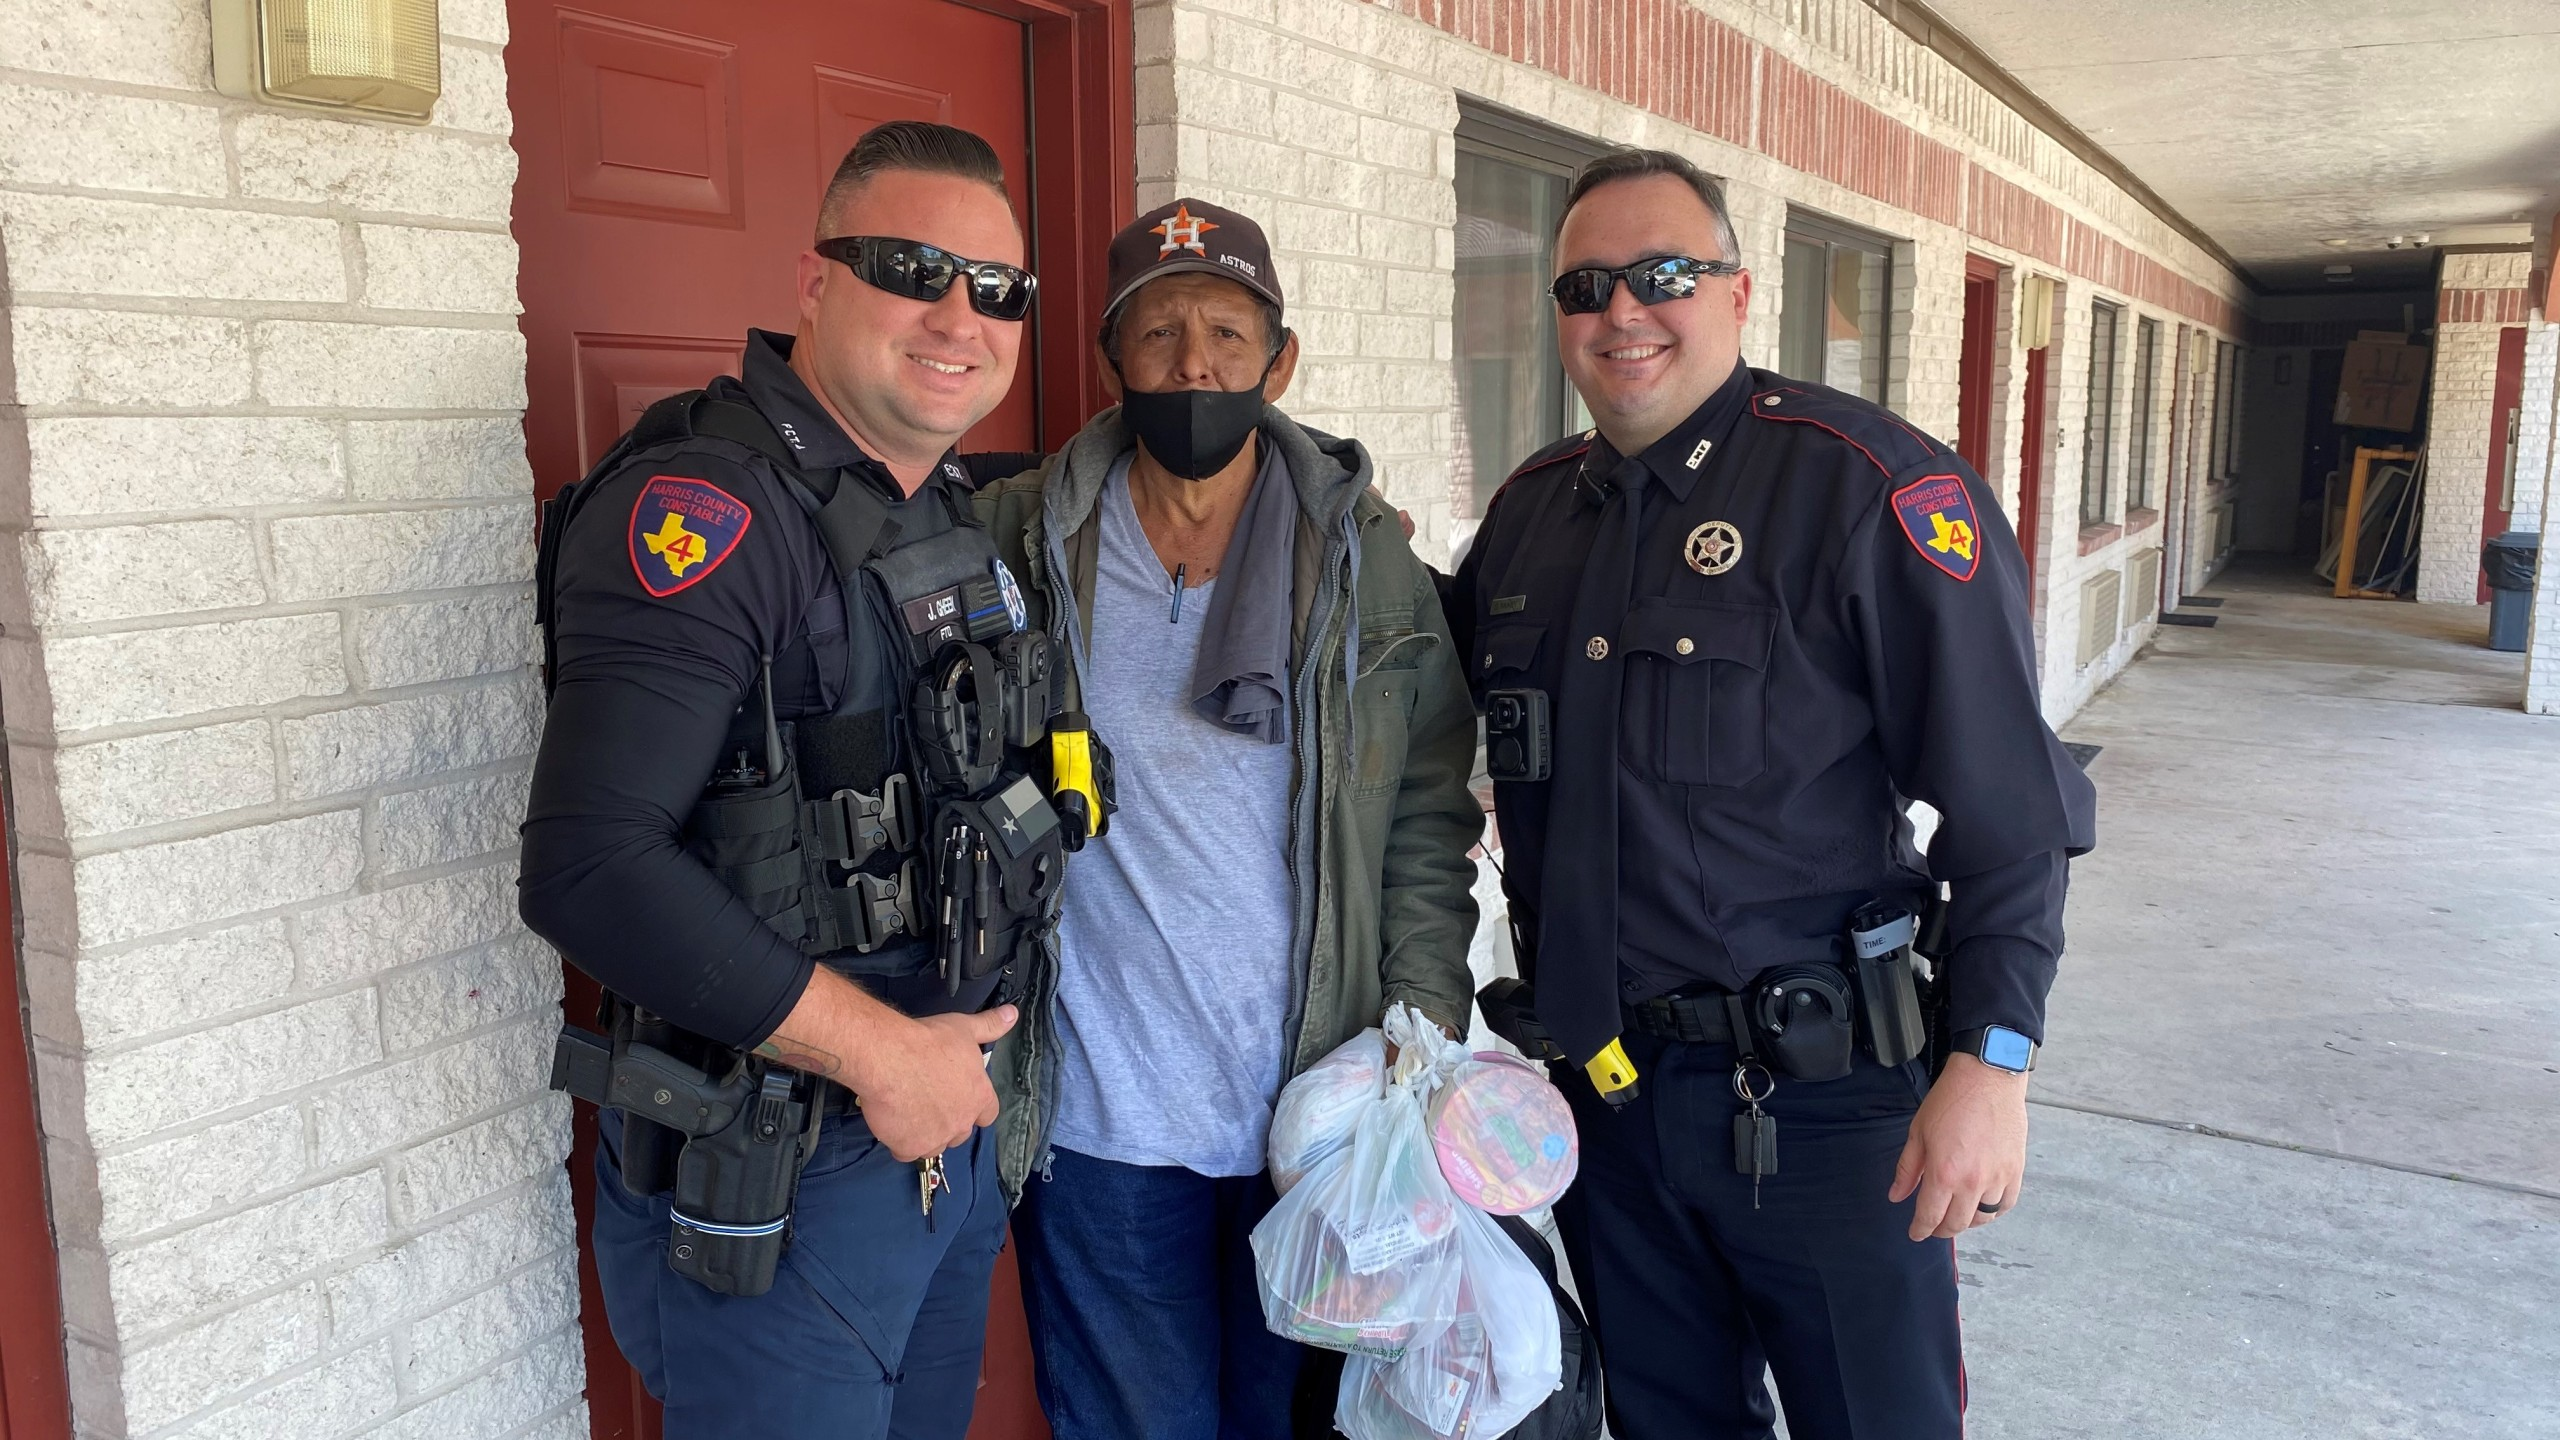 Deputies pay for homeless man's hotel room